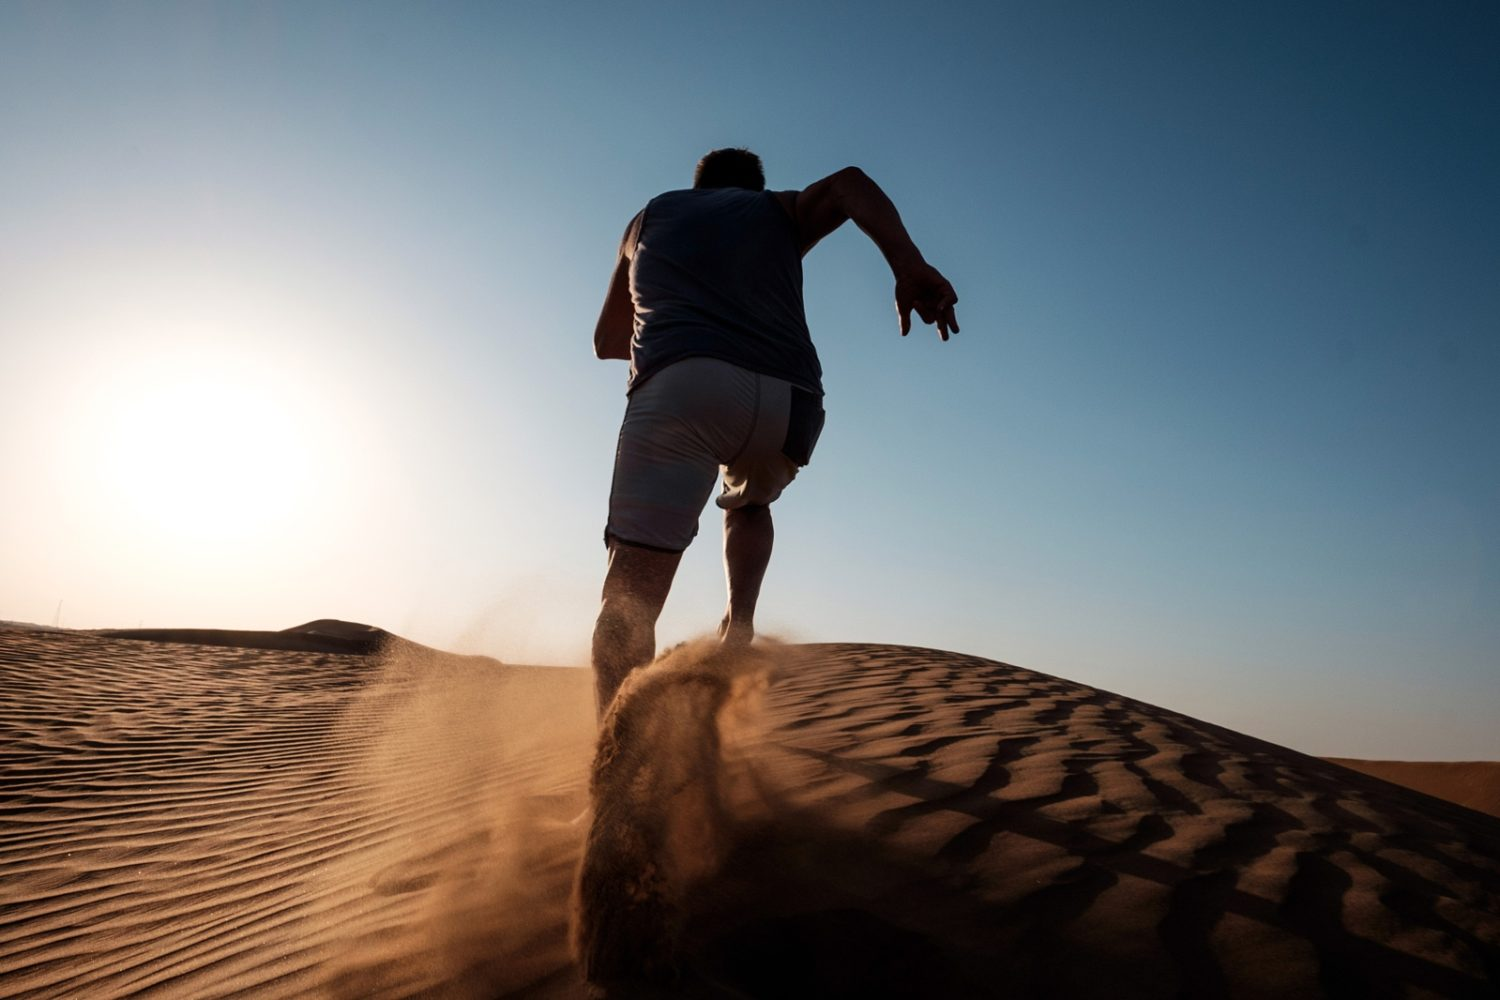 13 Incredible Photos To Inspire You To Get Active